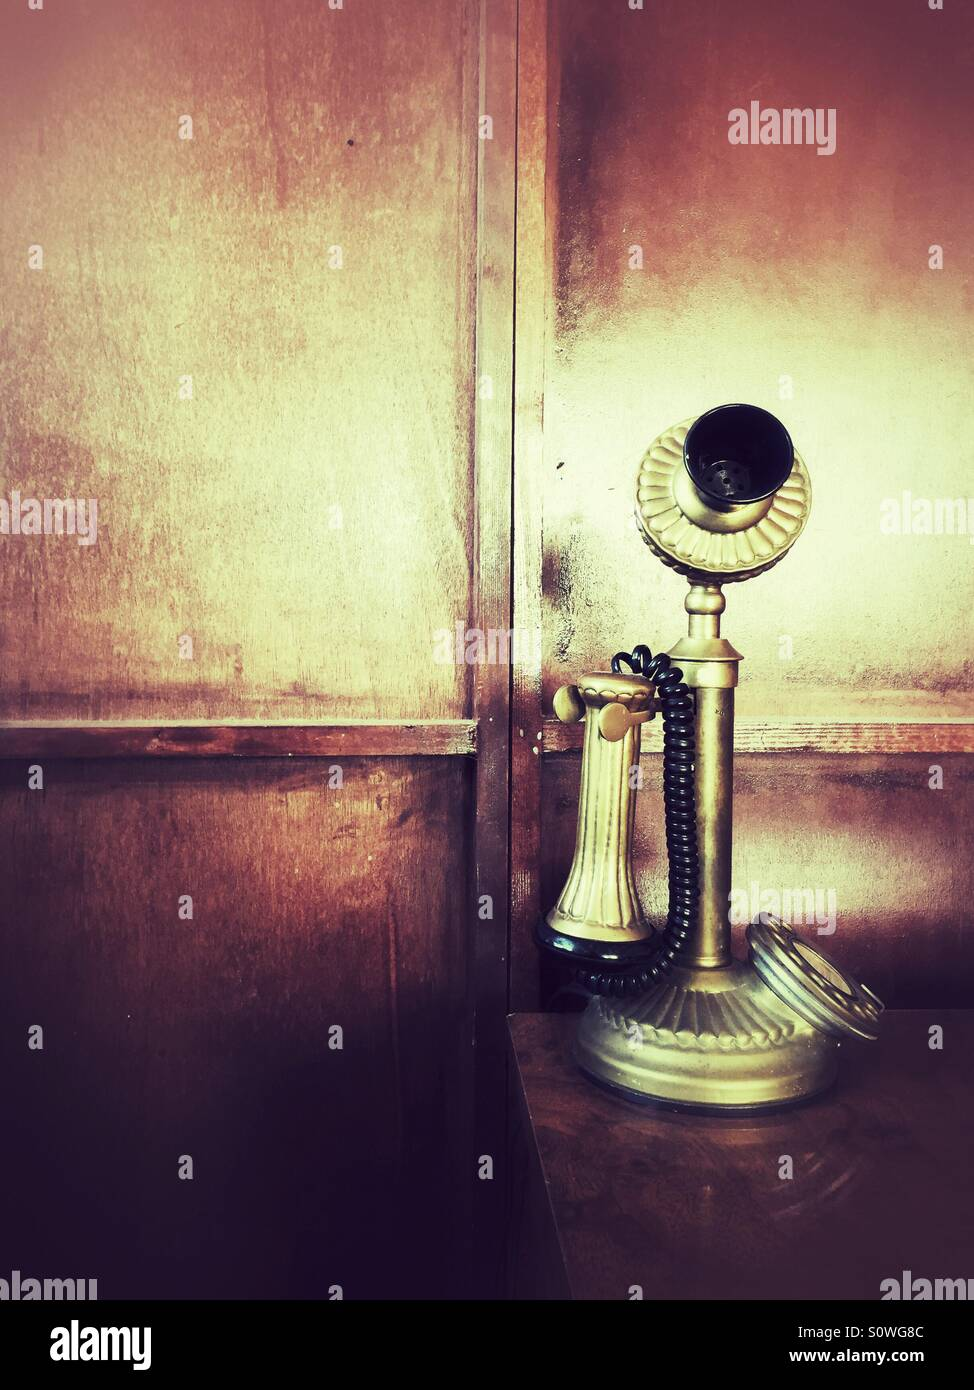 Old fashioned telephone - Stock Image